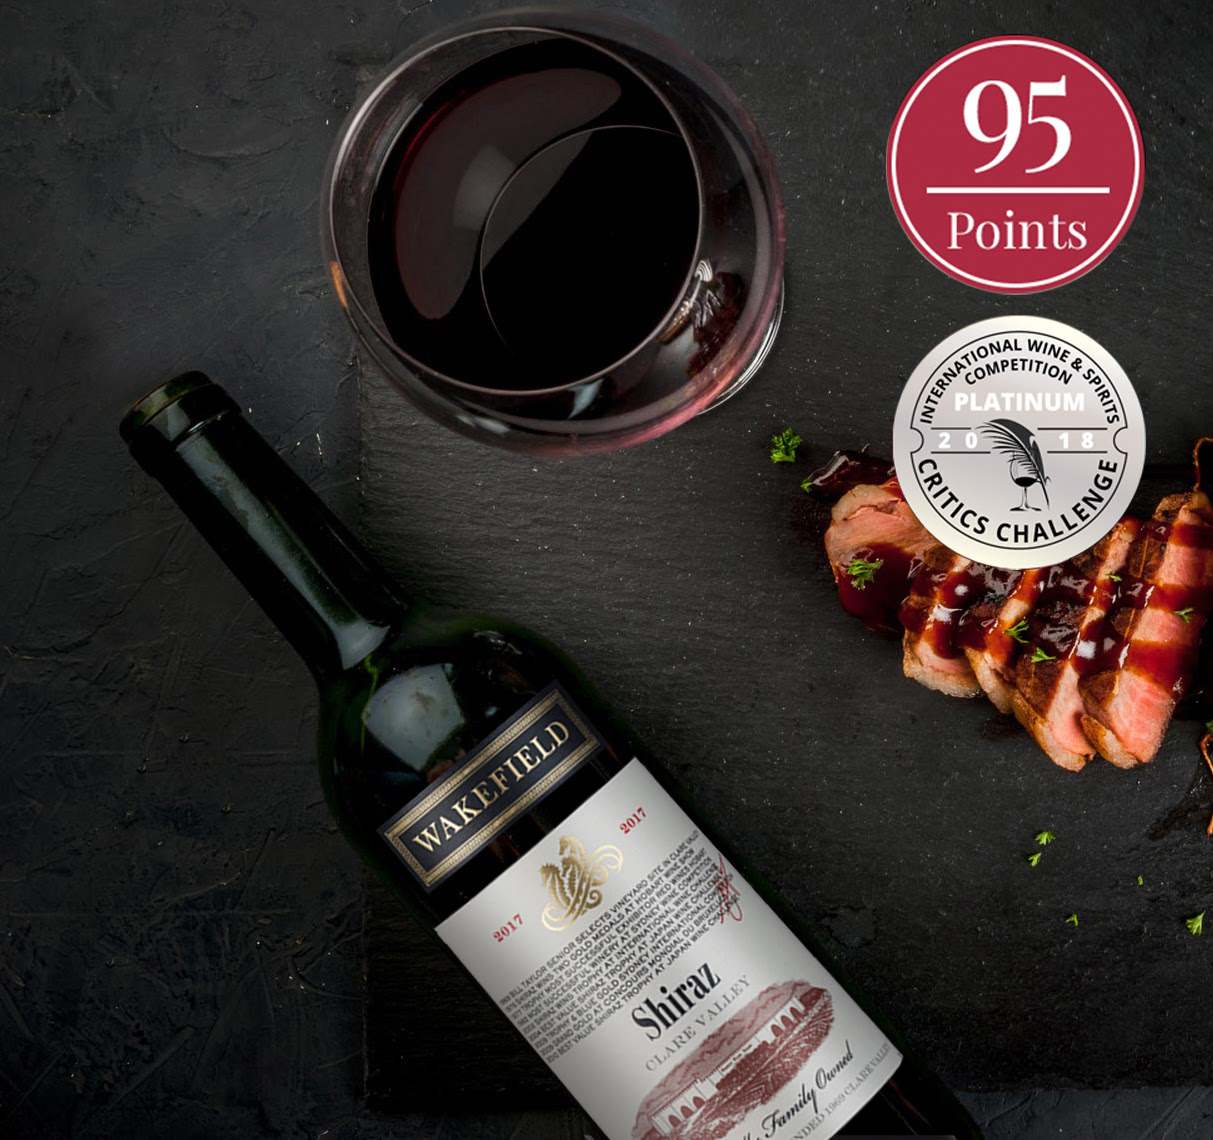 """Bottle and glass of Heritage Shiraz Clare Valley by Wakefield Wines 2017  """"95 Points"""" and """"Critics Challenge"""" seals"""